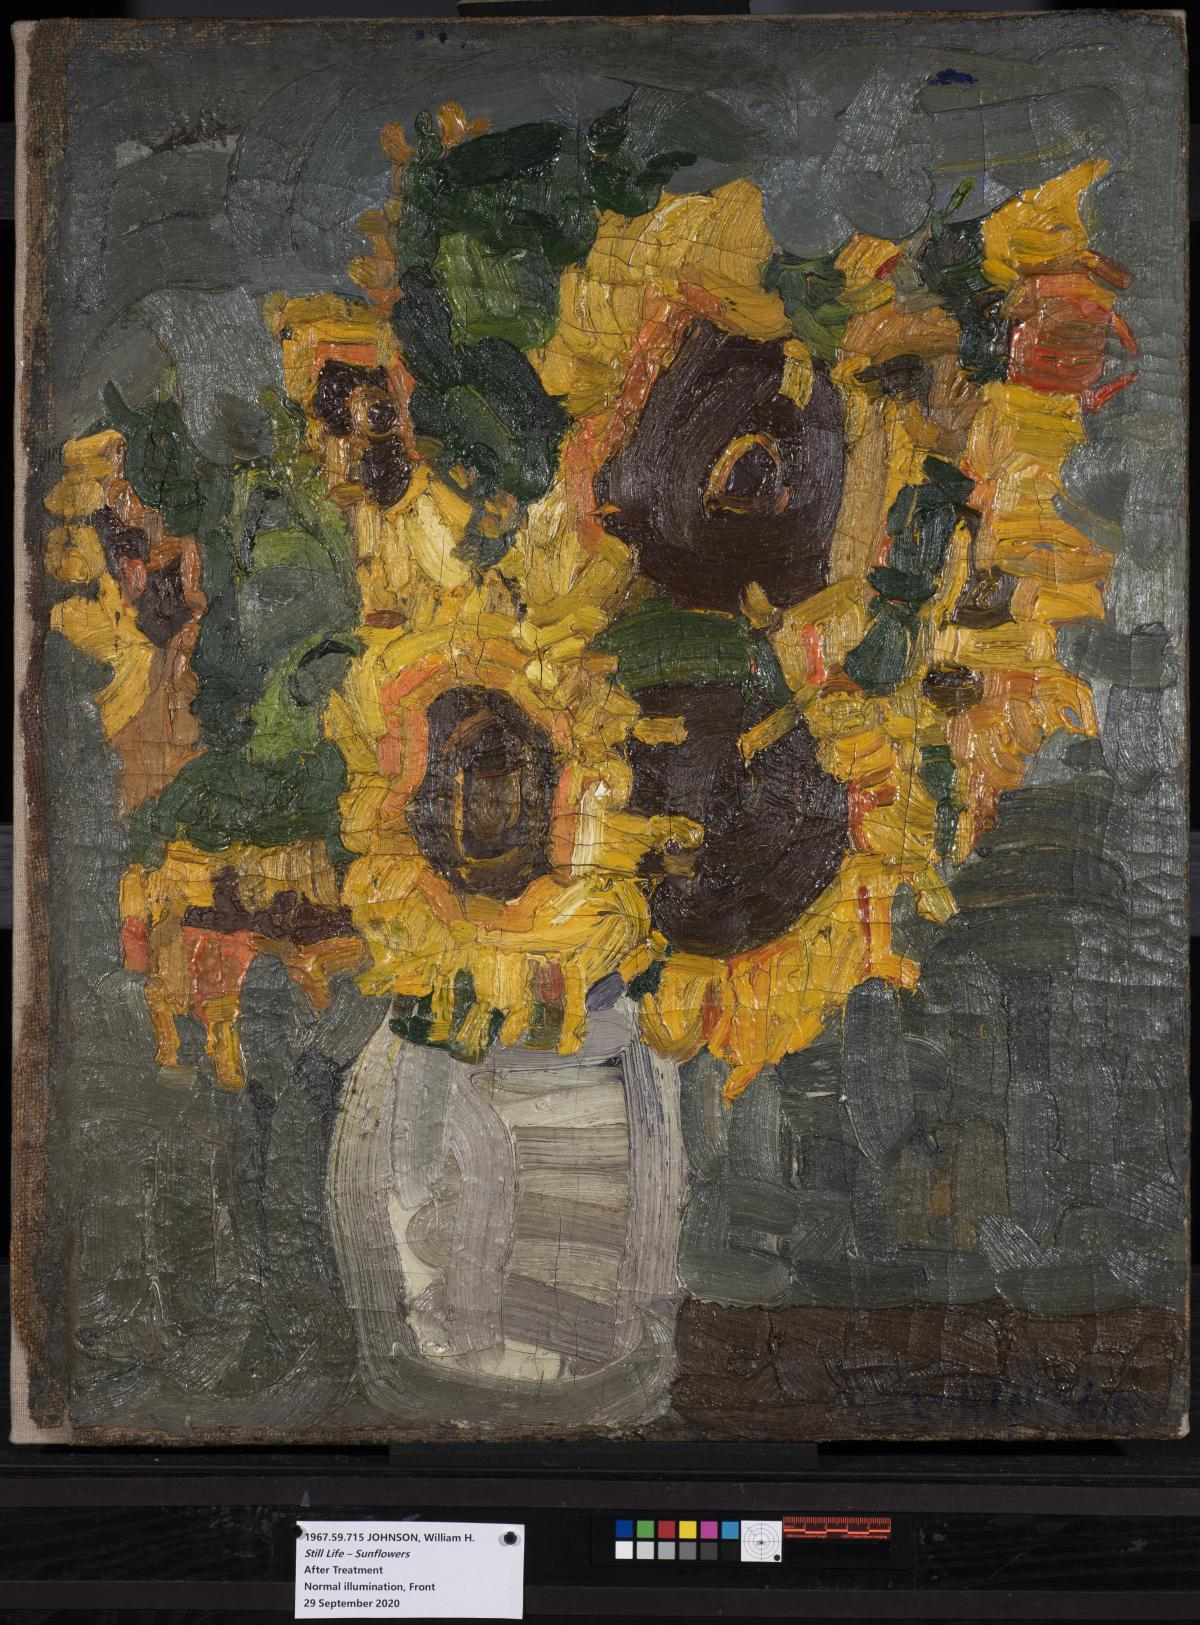 A painting of a vase of yellow sunflowers that has undergone conservation treatment